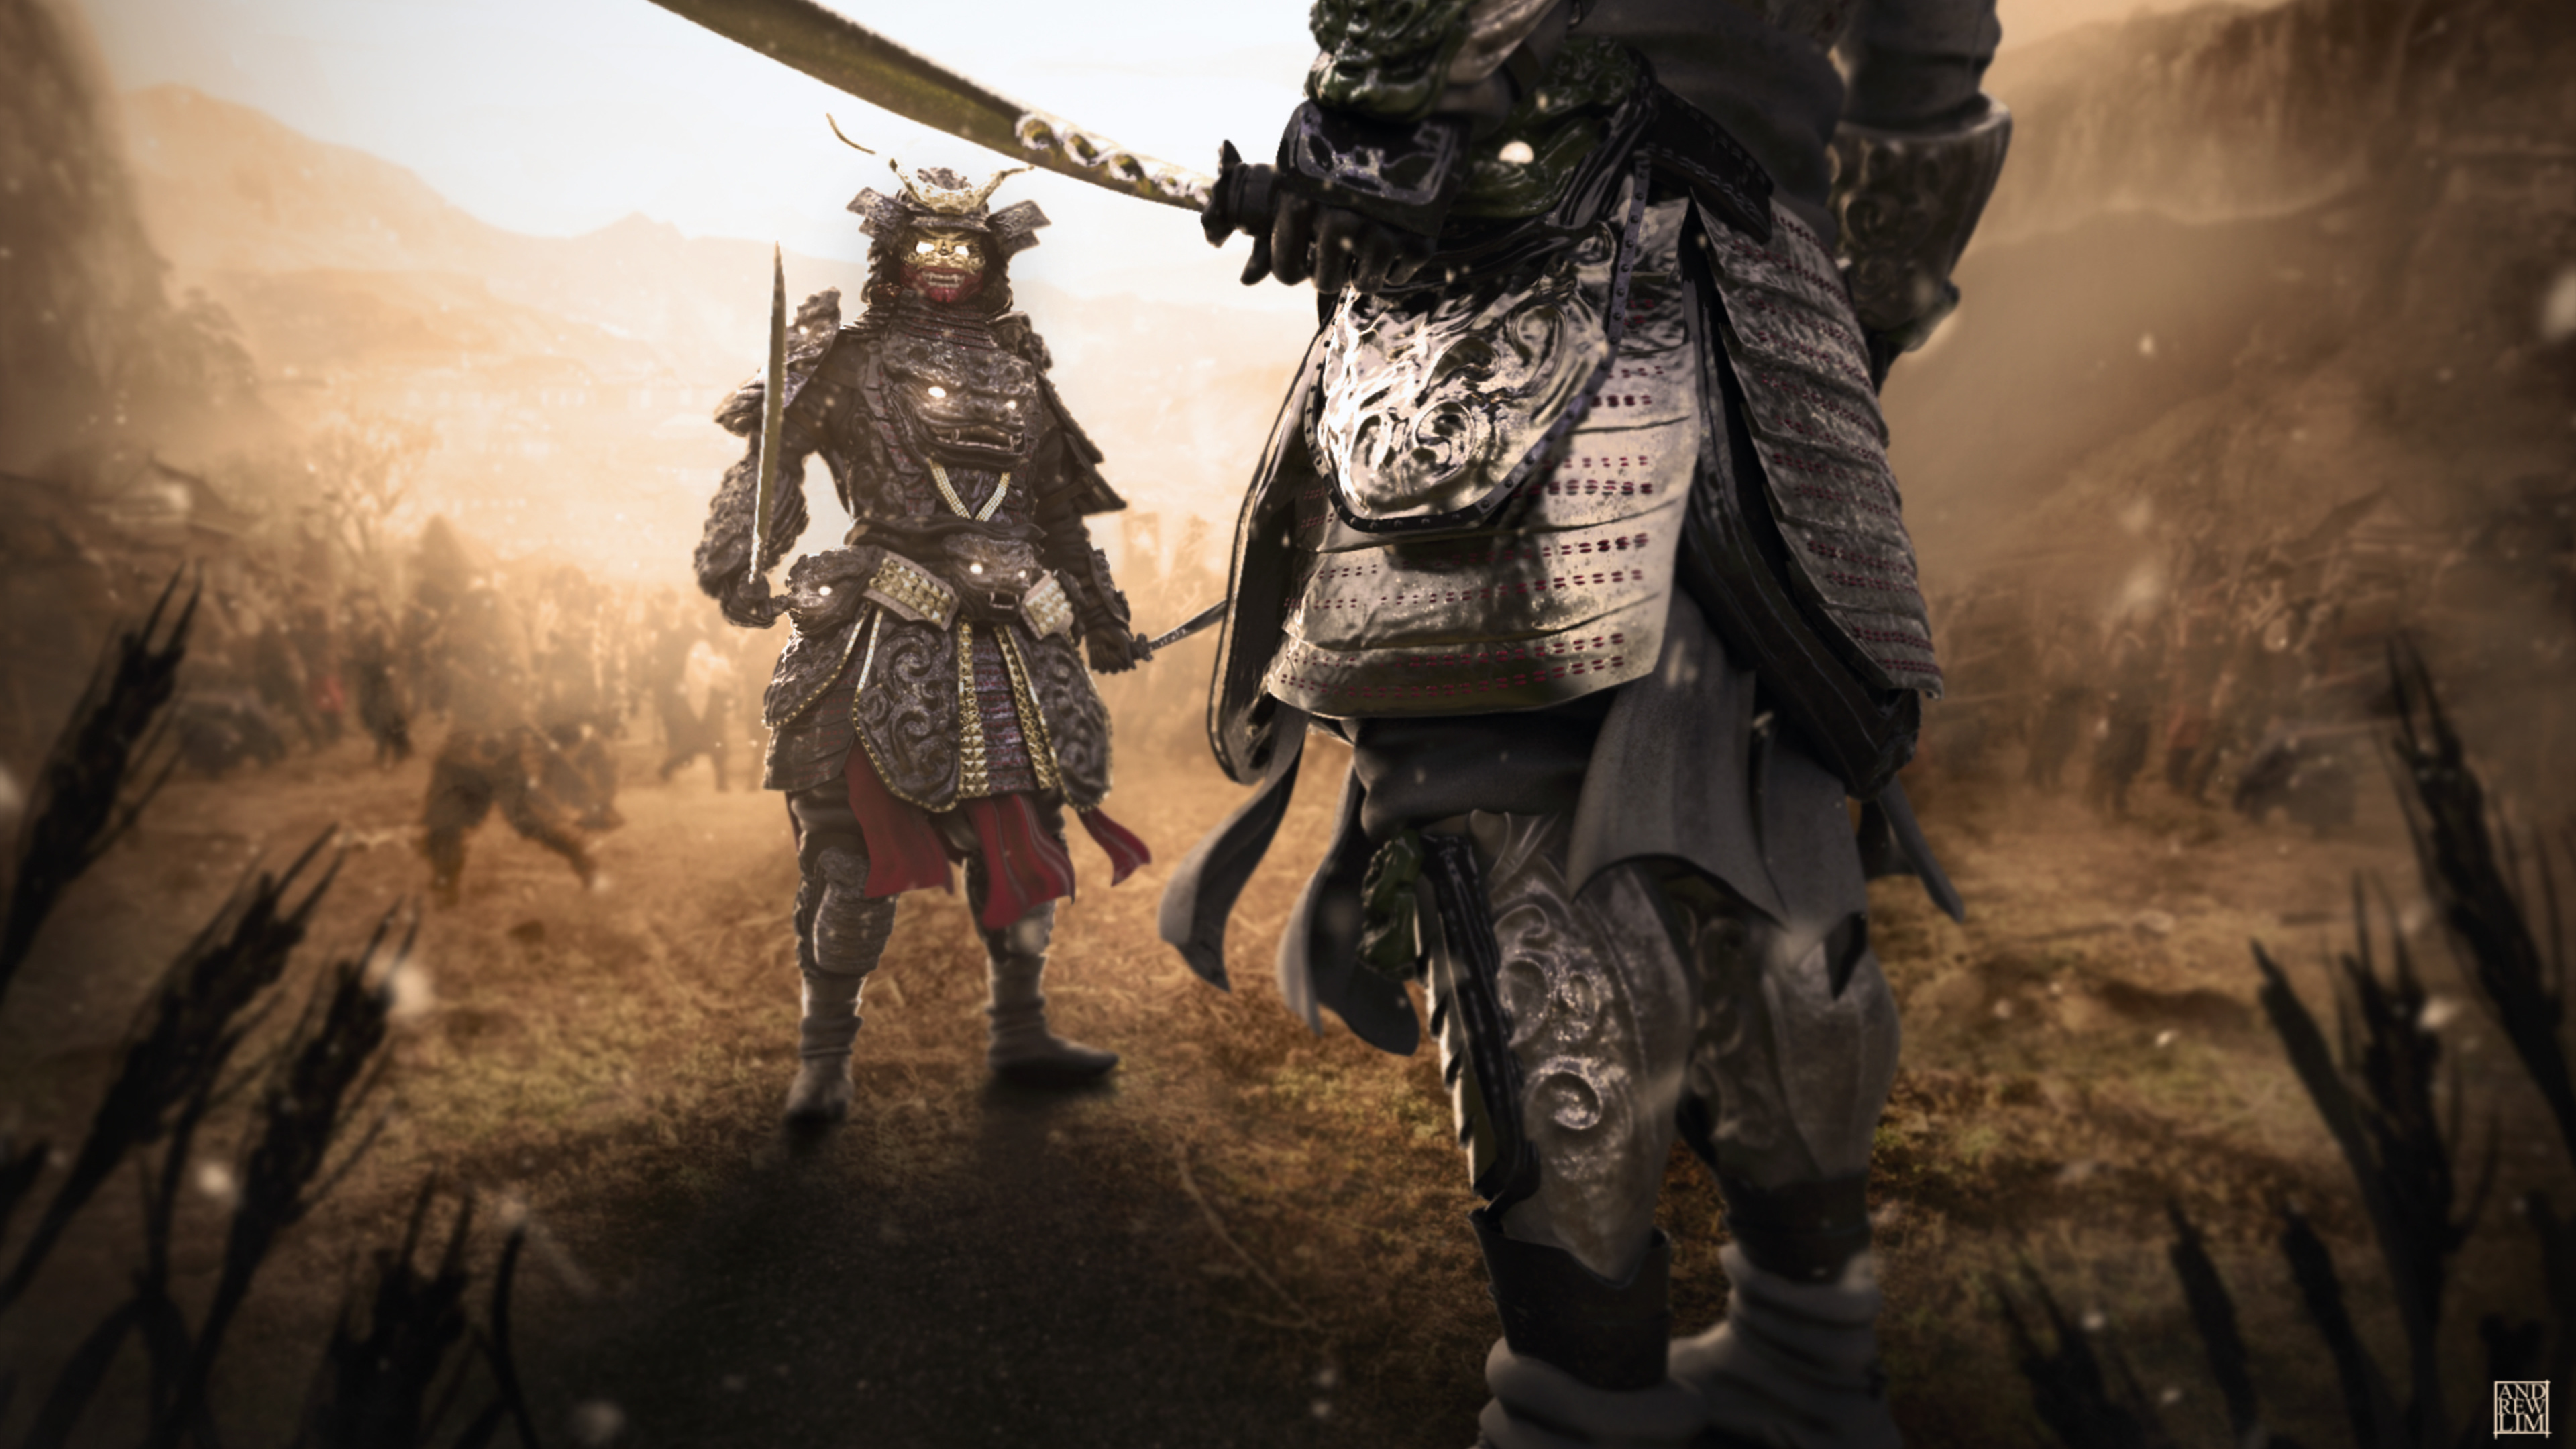 Wallpaper Armour Samurai Warrior 2 Fantasy 3840x2160